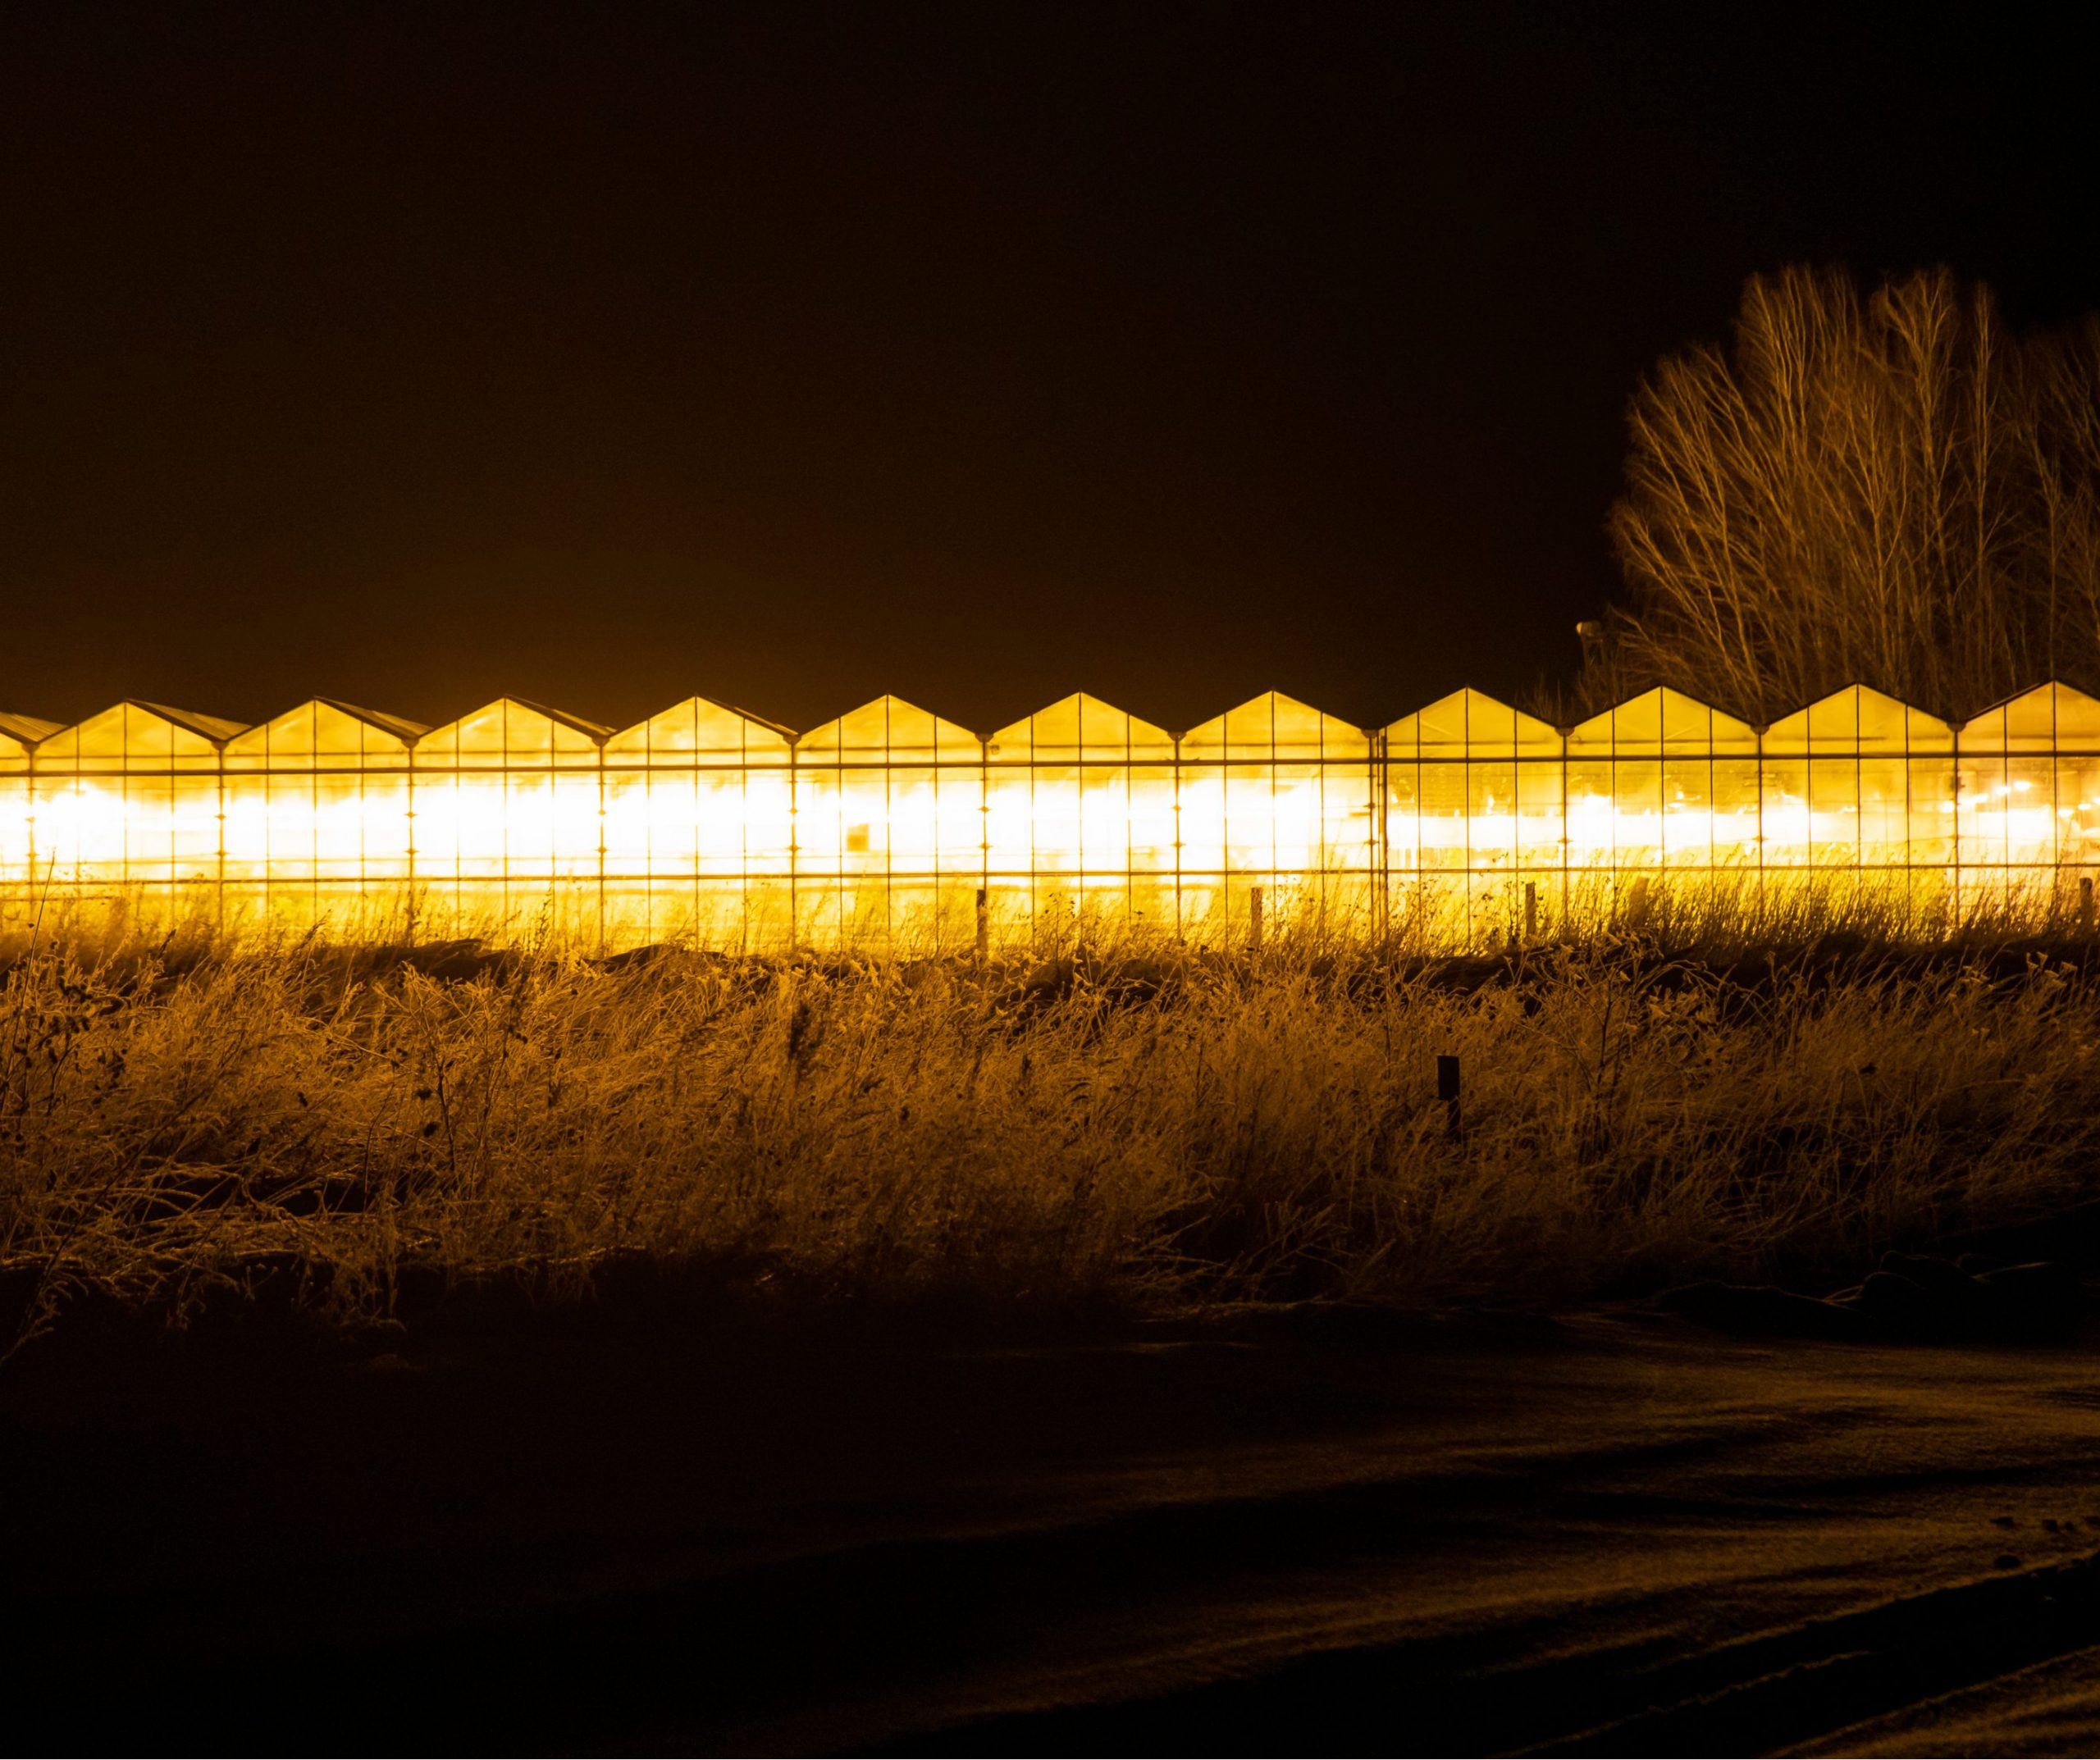 Light pollution from greenhouses at night